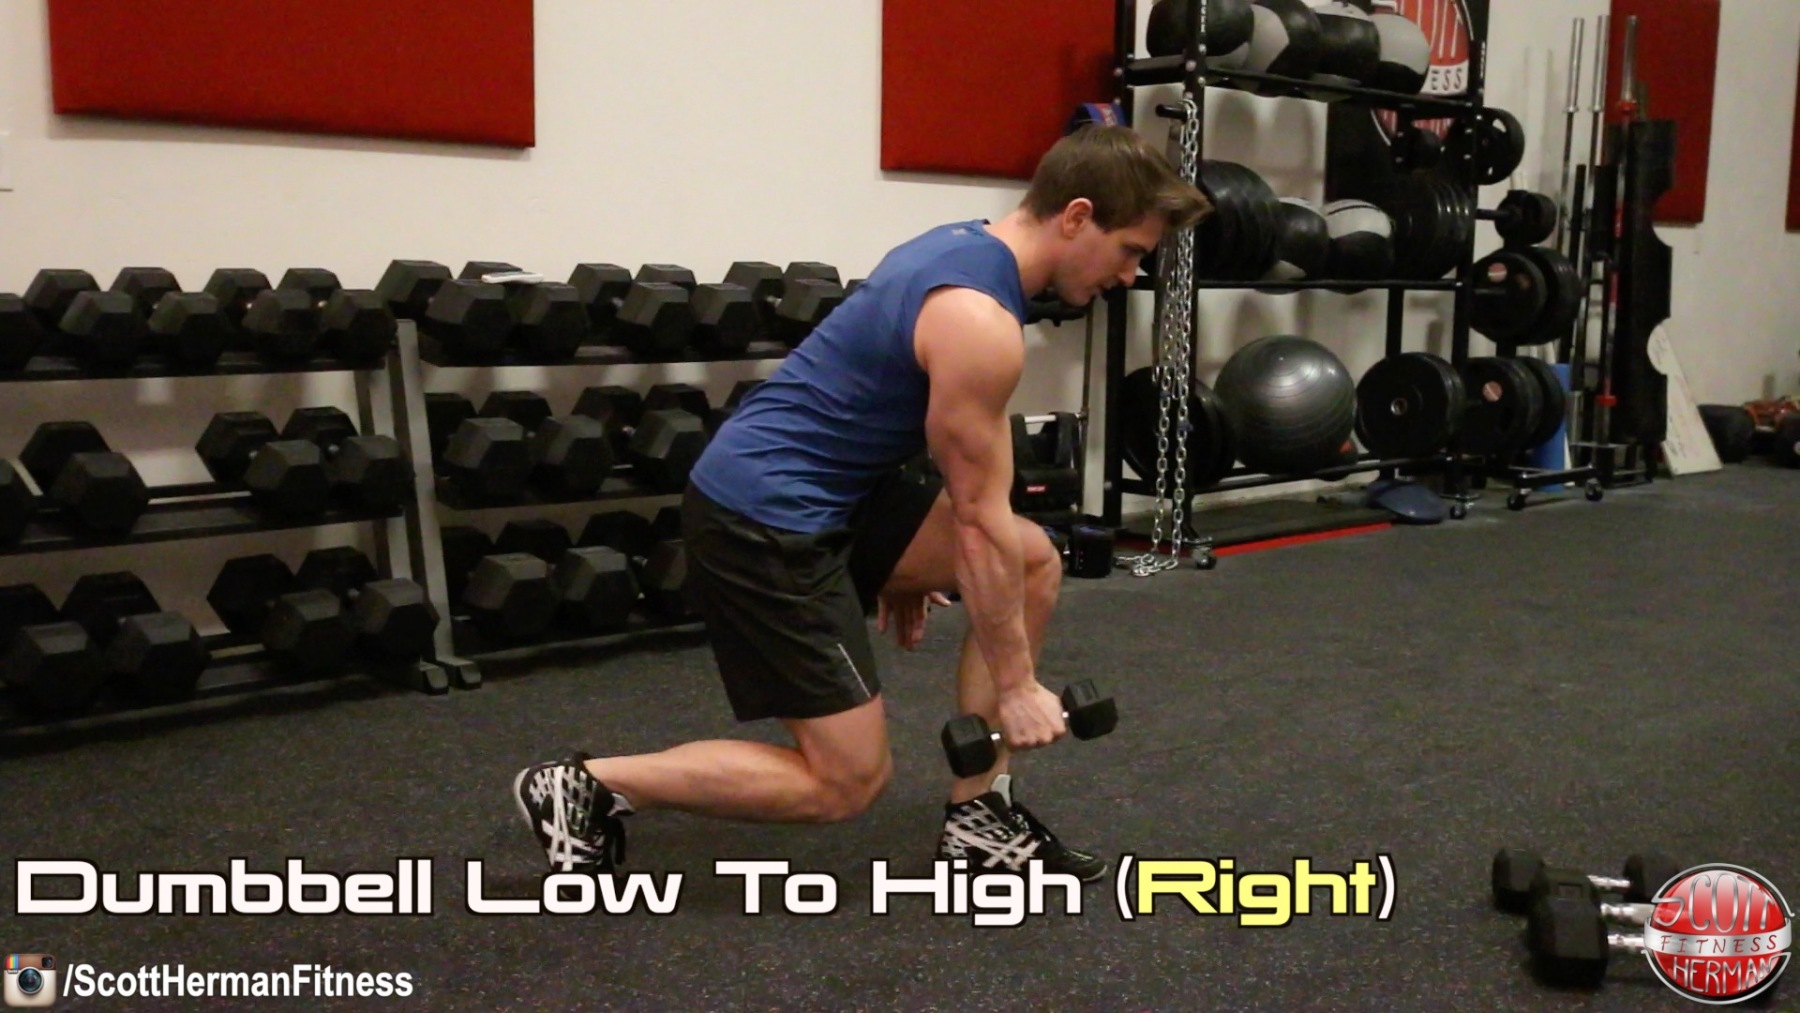 dumbbell-low-to-high-right